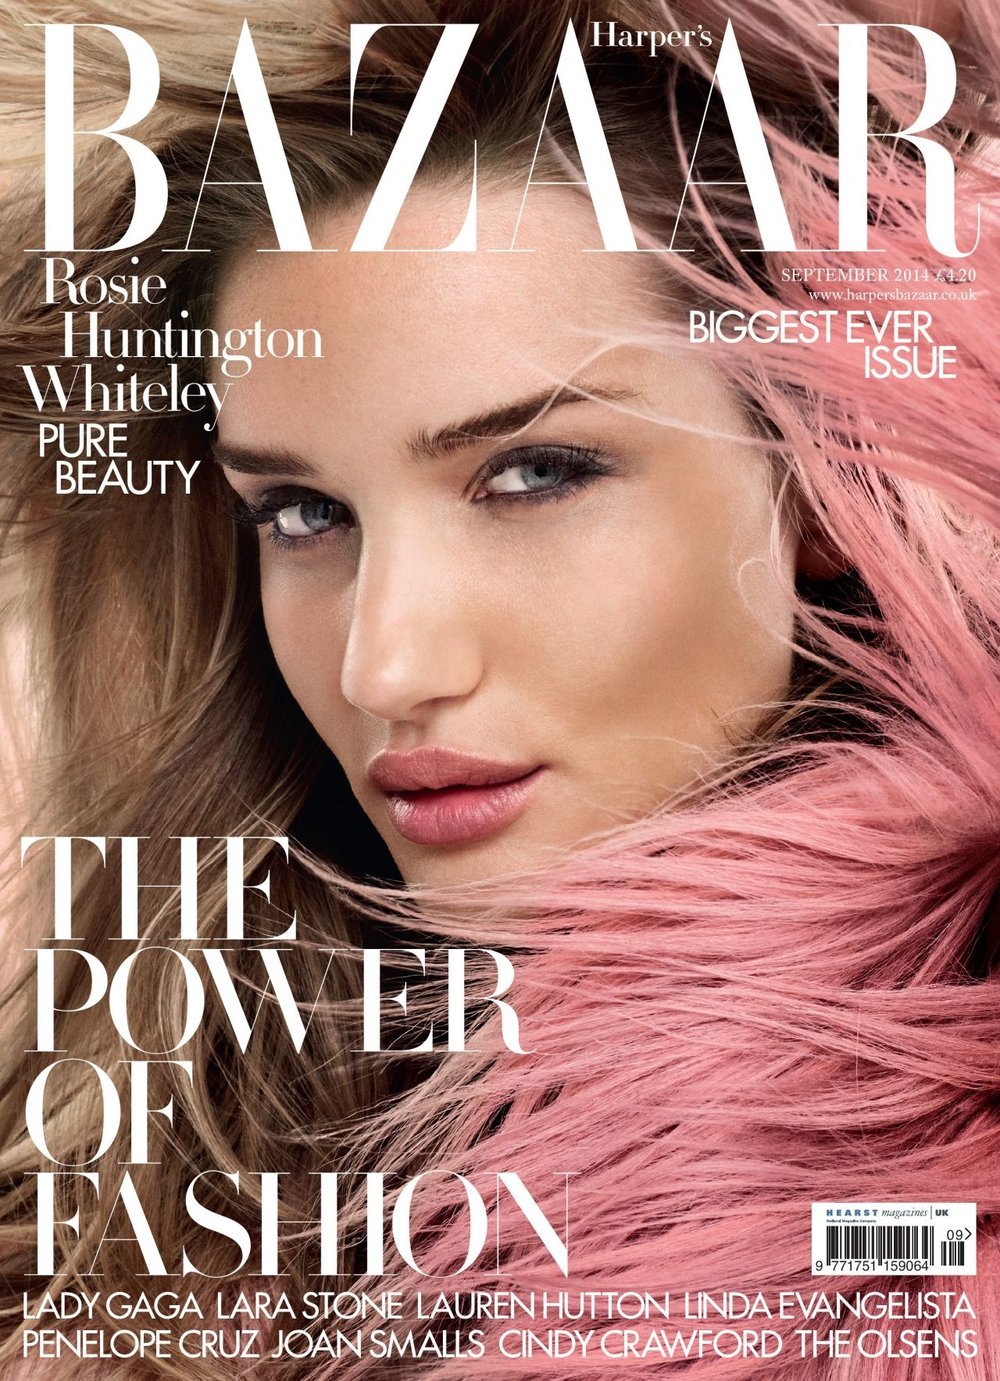 rosie-huntington-whiteley-harper-s-bazaar-magazine-uk-september-2014-cover_1.jpg